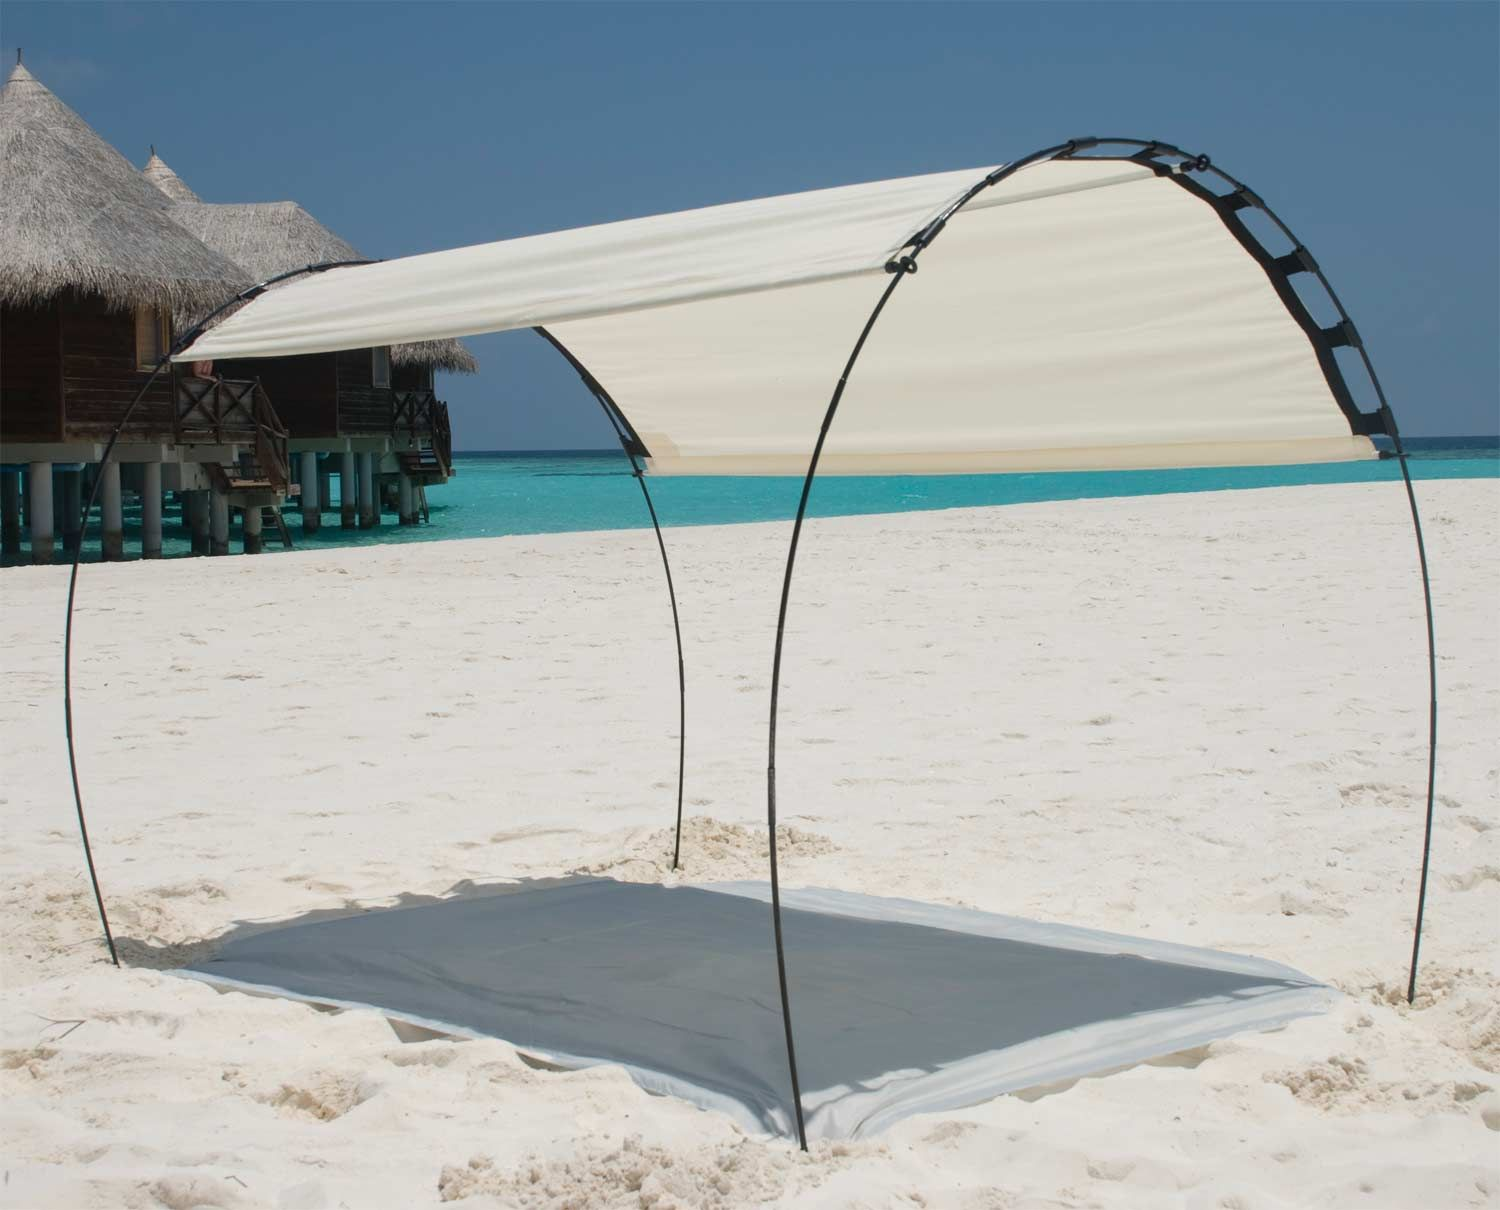 BenefitUSA EZ Pop UP Gazebo Canopy Reviewed in 2019 | Beach chairs